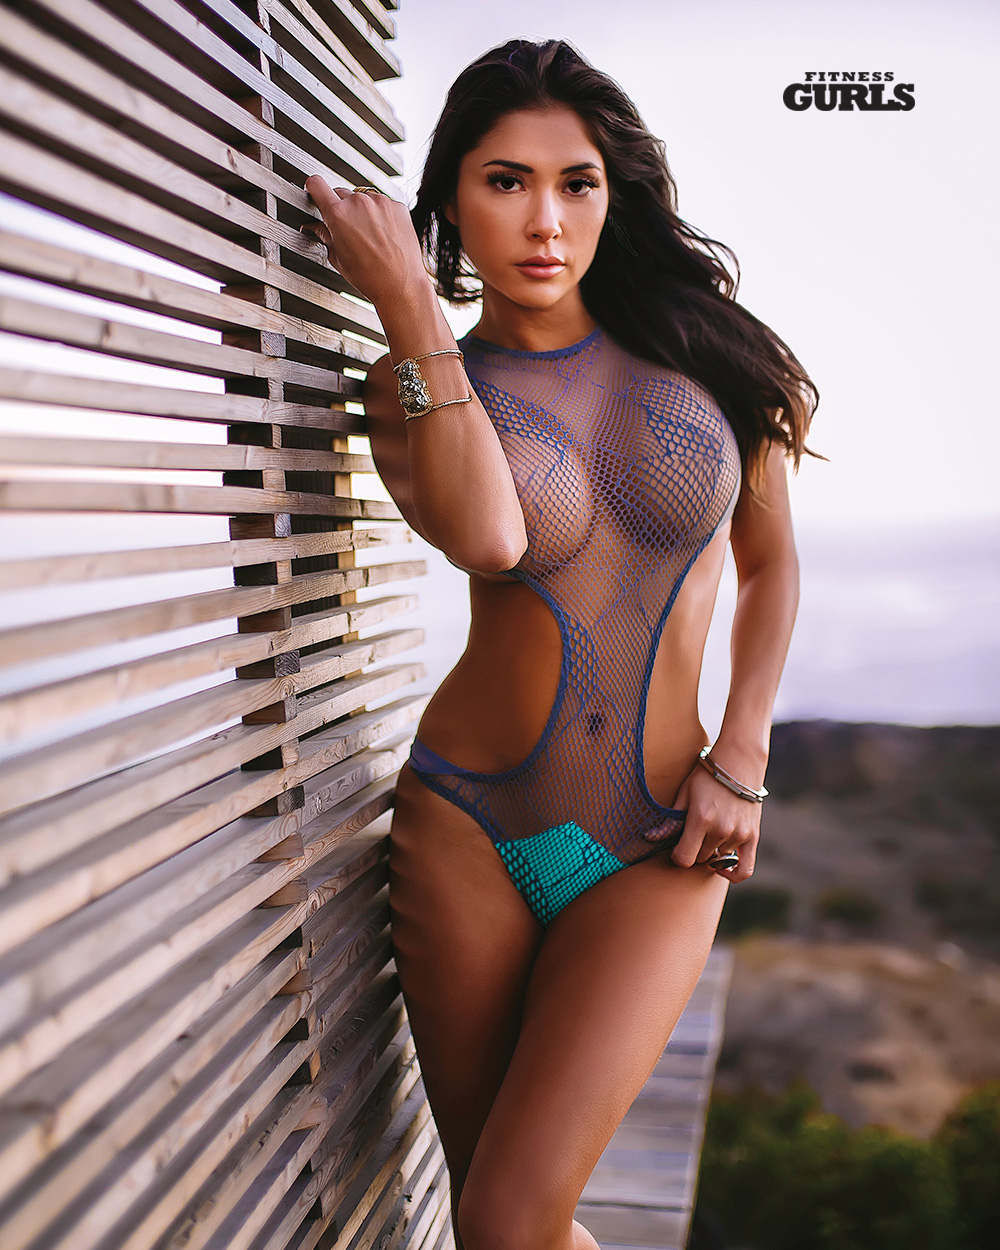 Asian woman with swimsuit and lotion 6